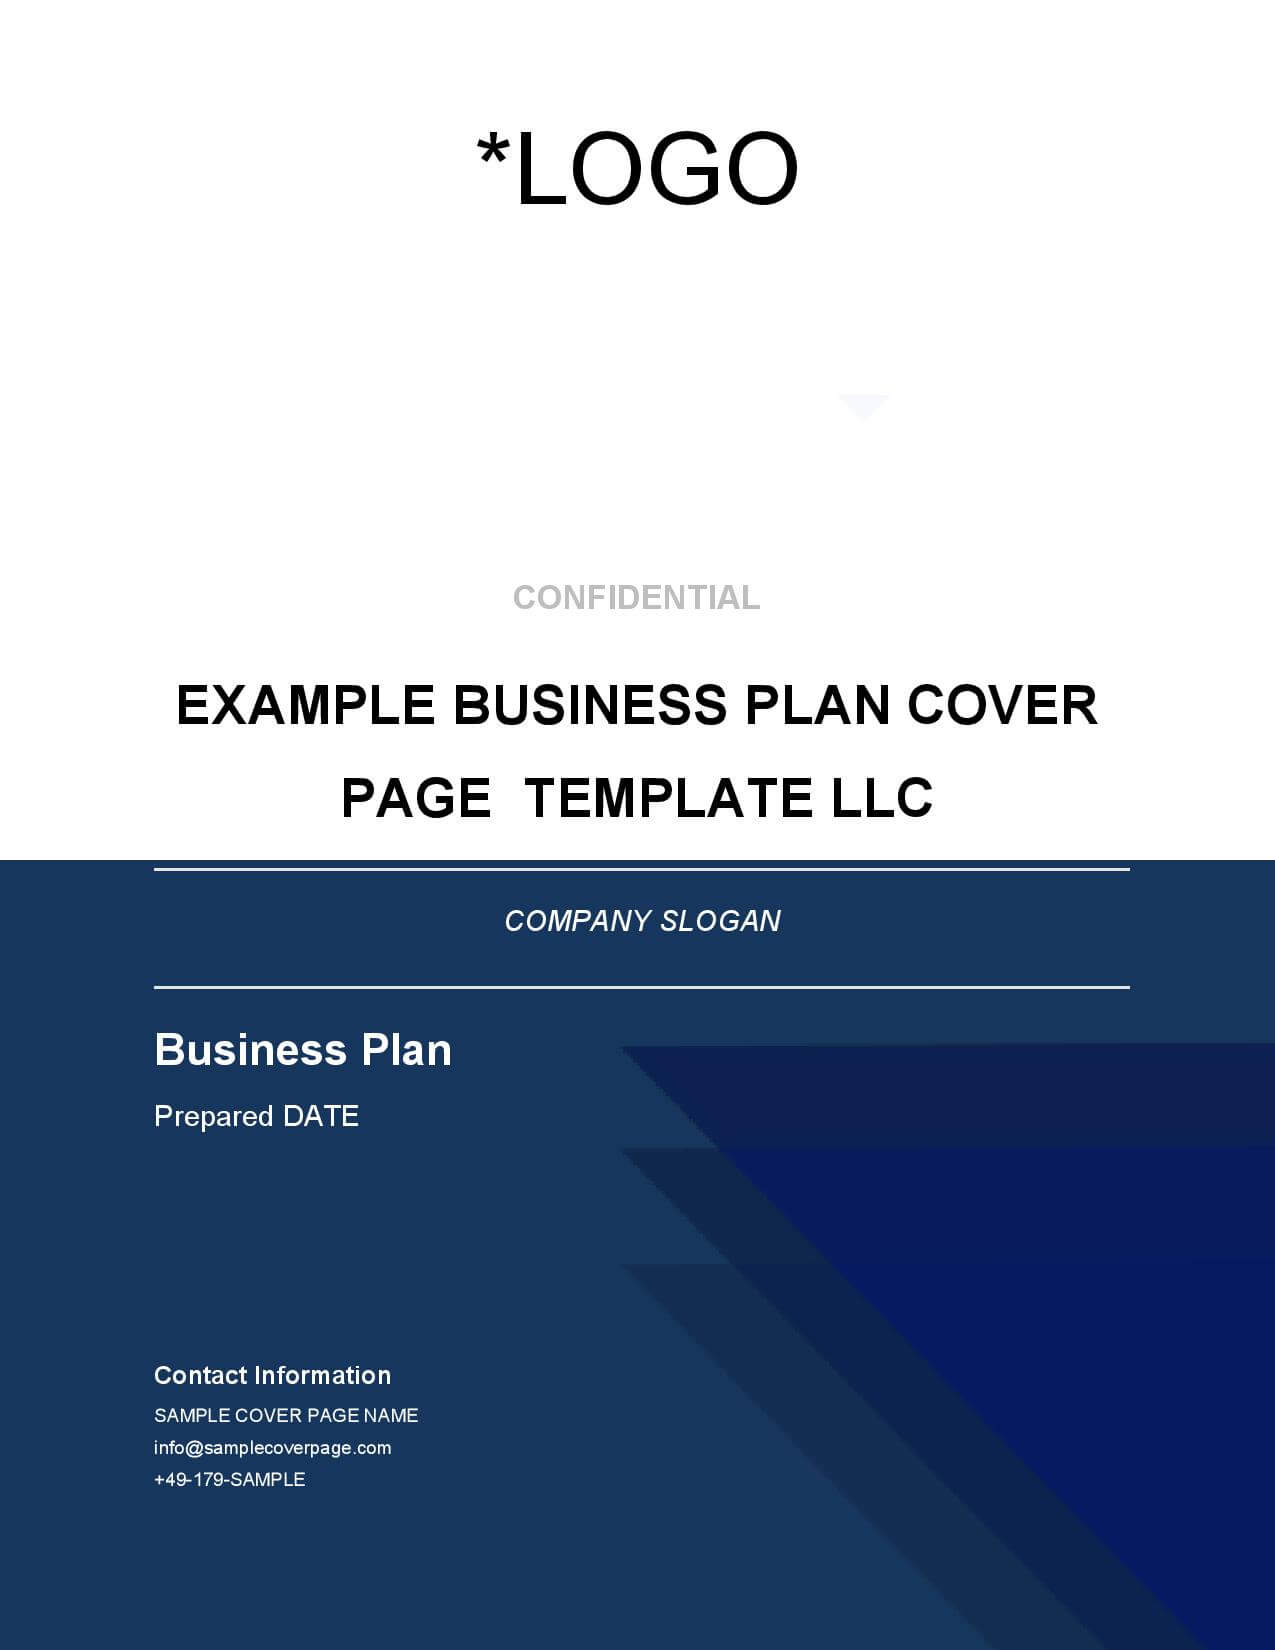 businessplan cover page template en 1 page 001